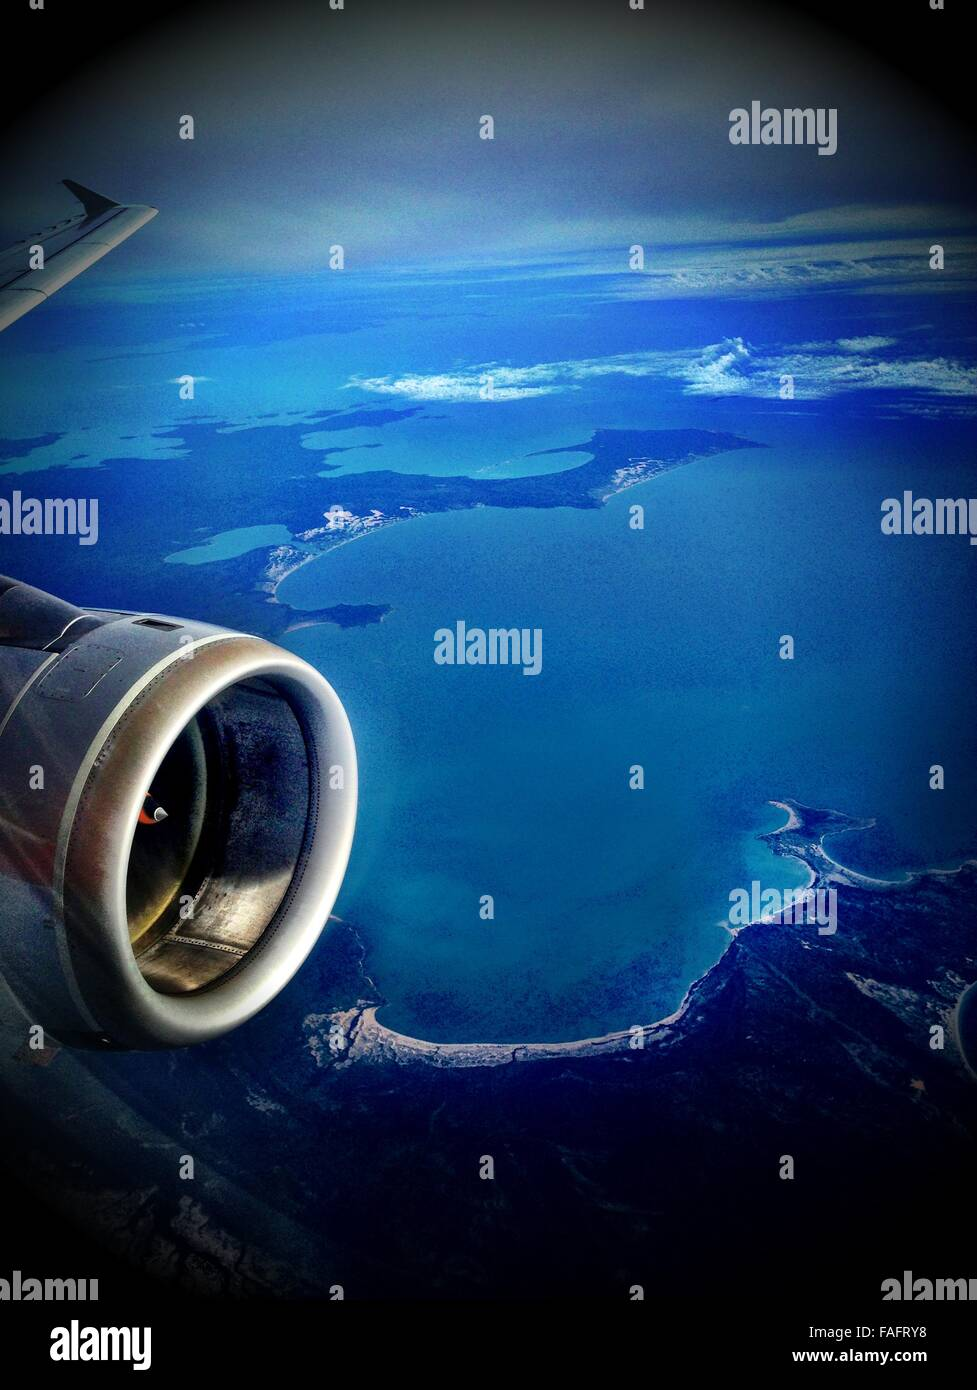 jet plane wing and engine flying over islands in the ocean, - Stock Image